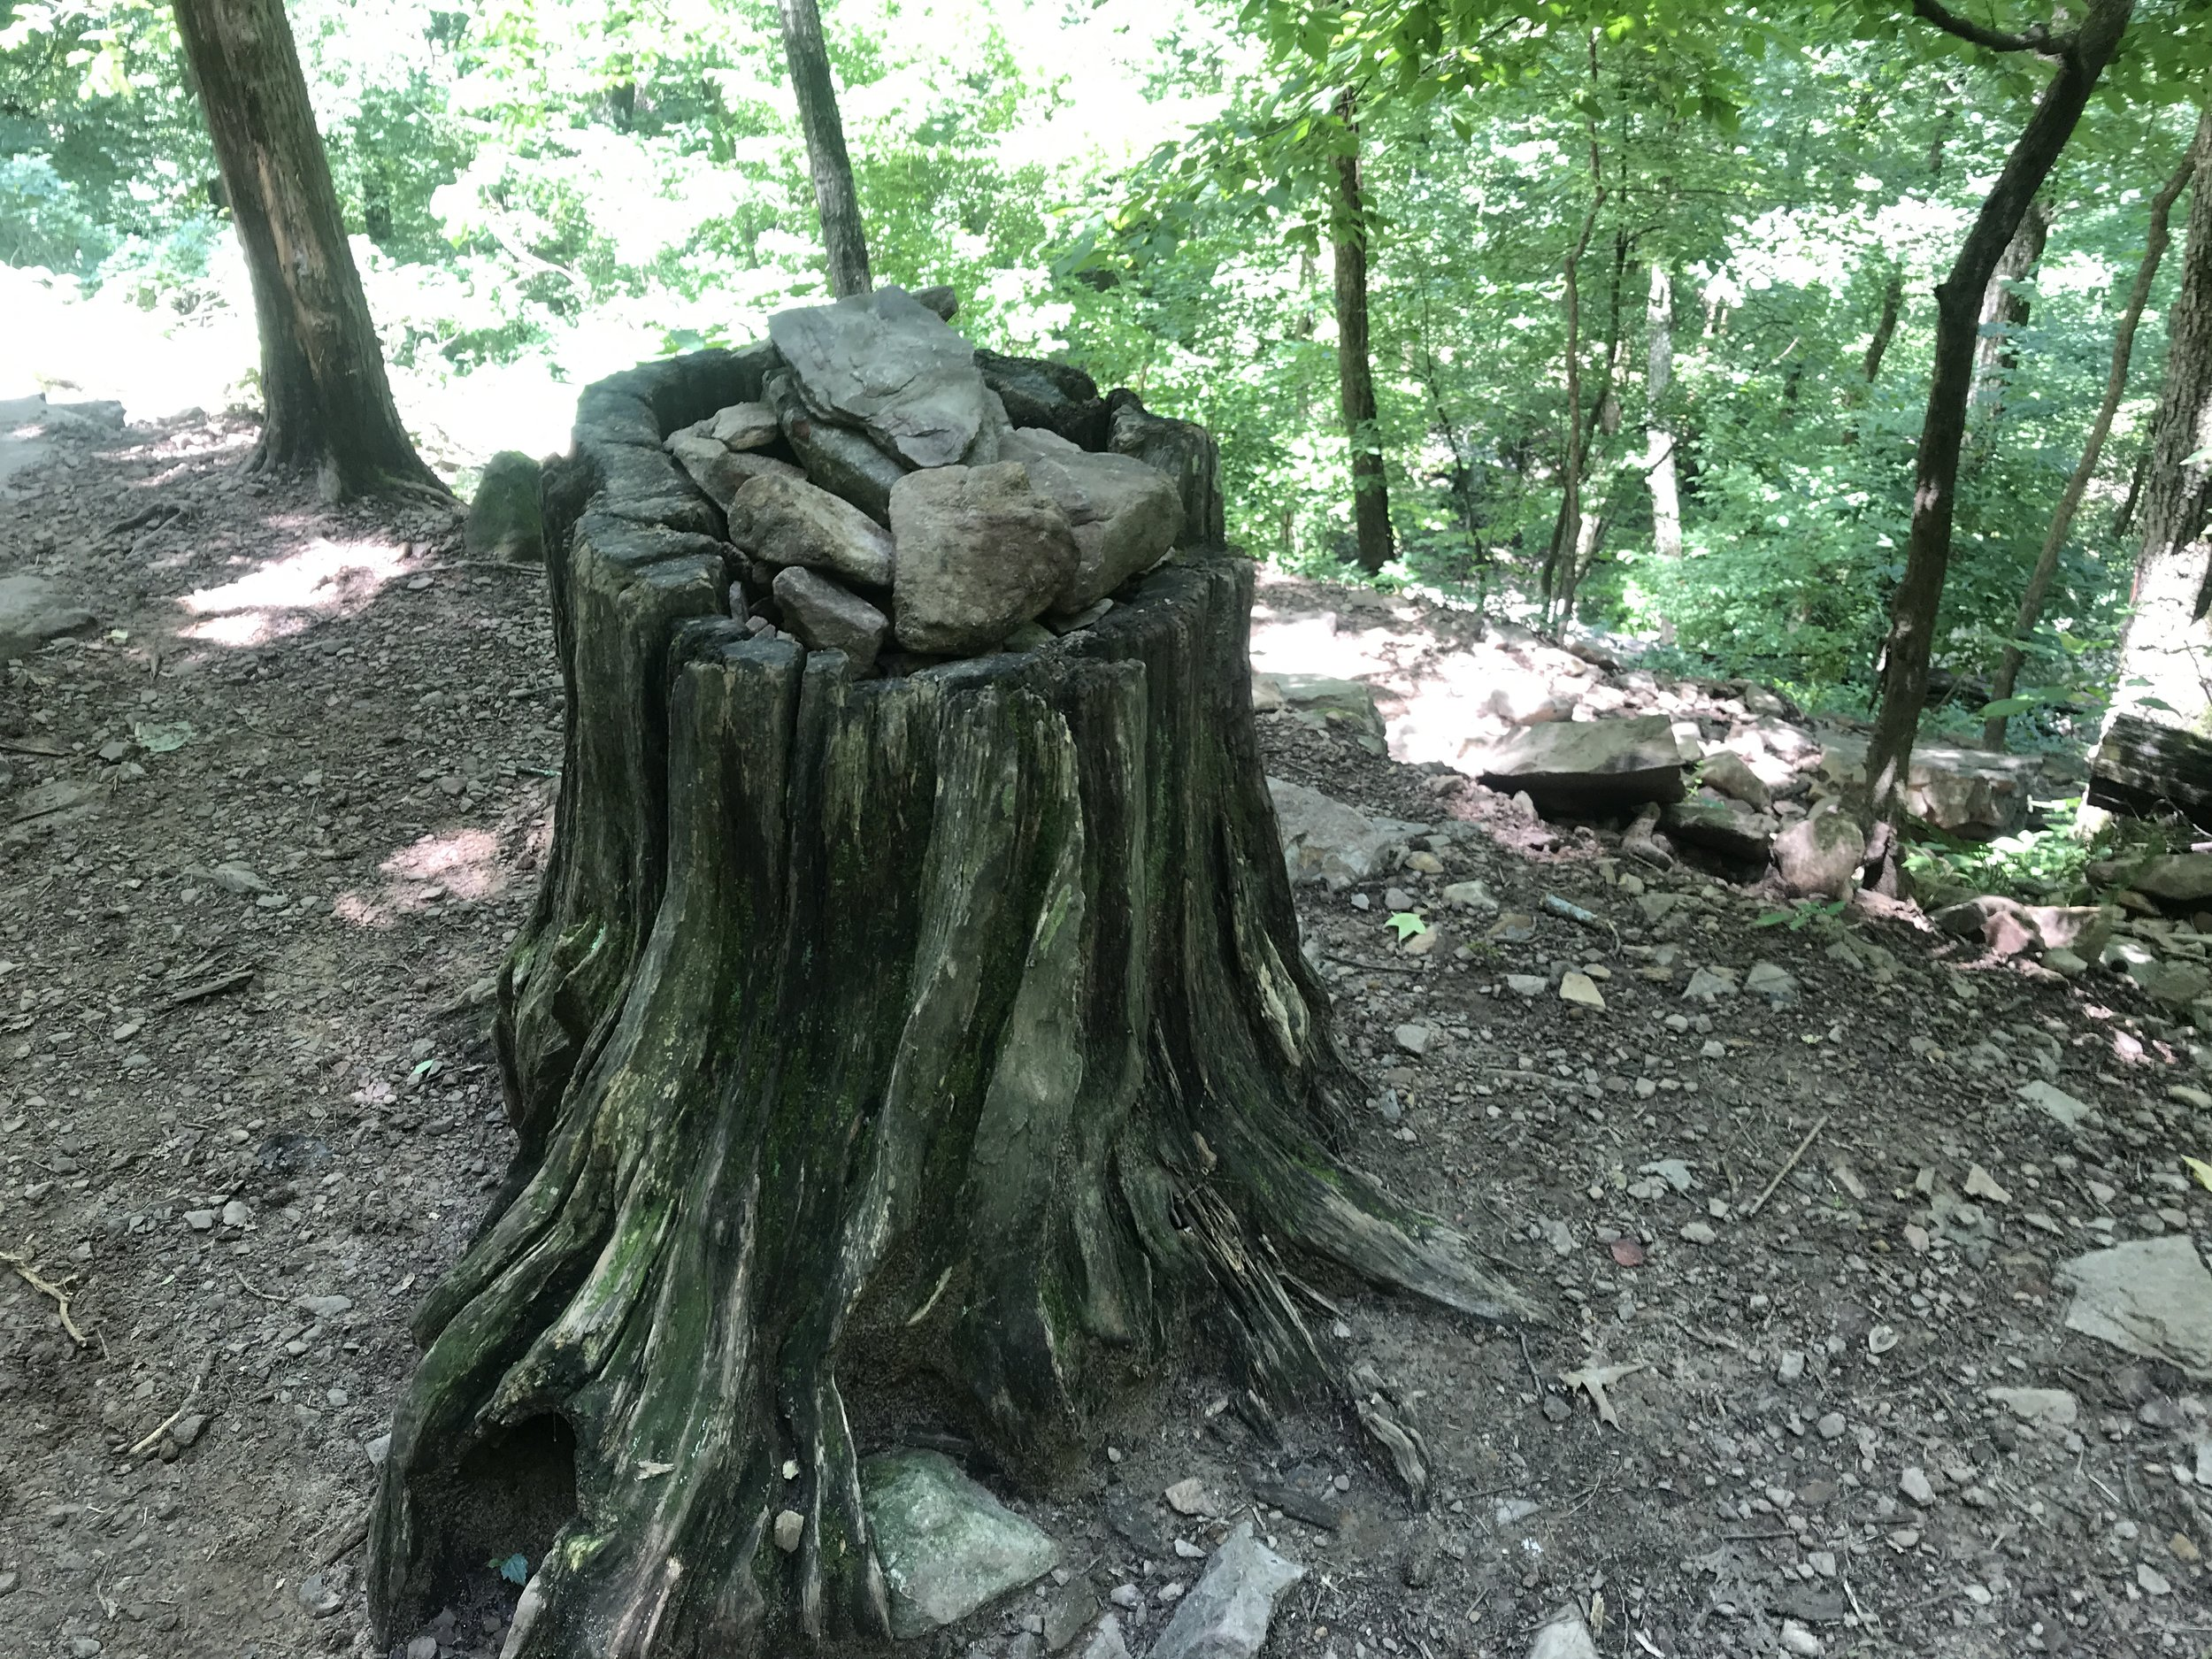 That is one way to fill an old stump